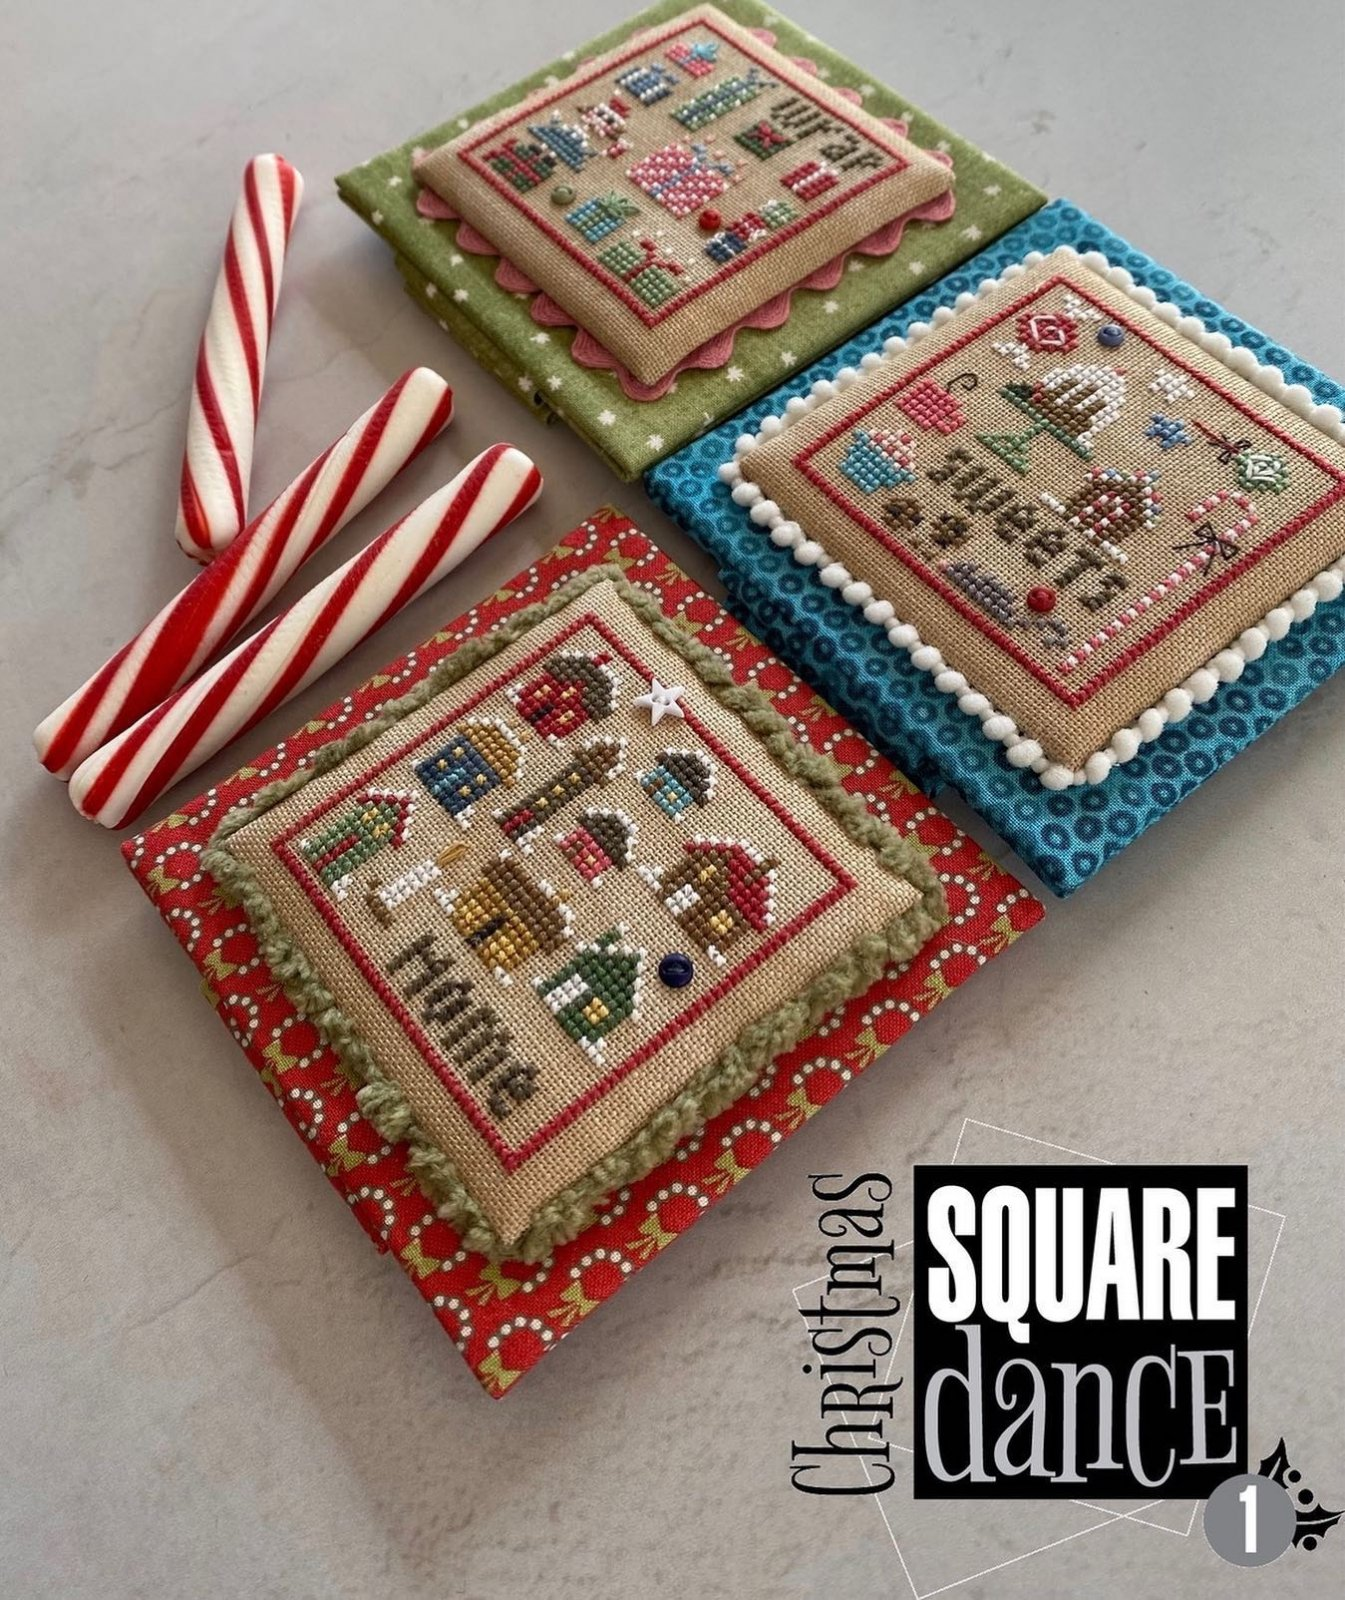 Heart in Hand Christmas Square Dance 1